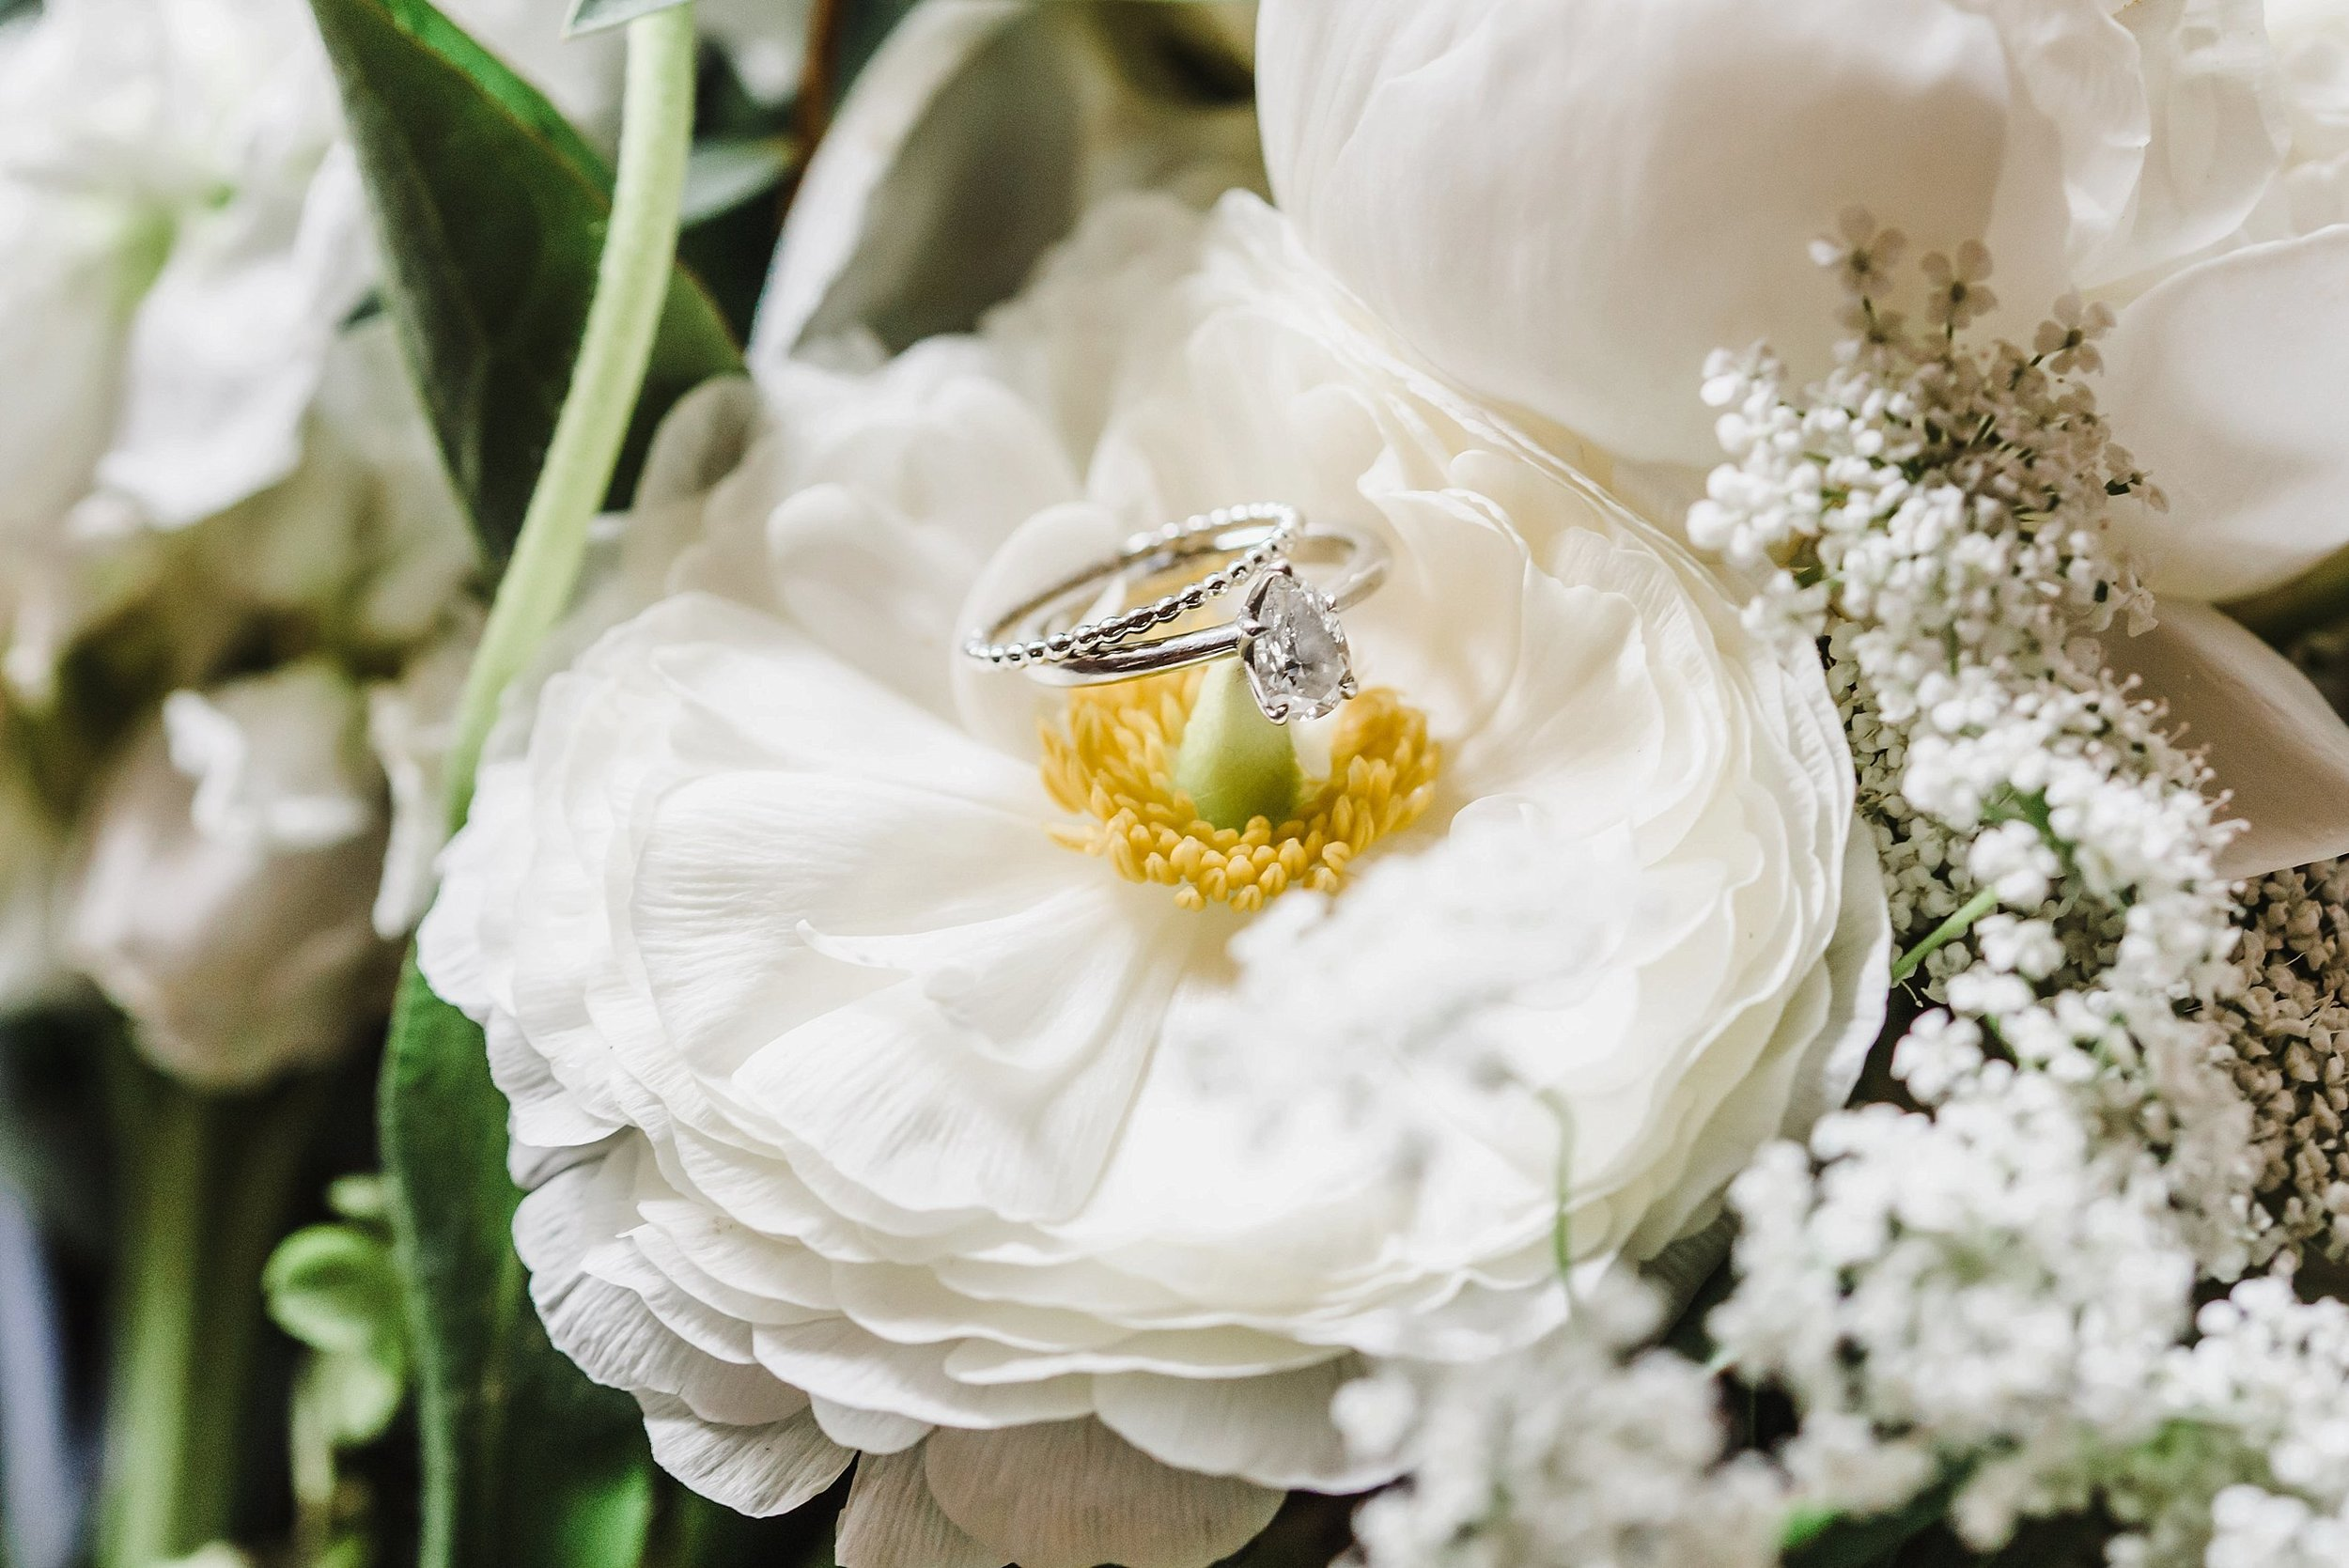 This pear-shaped diamond engagement ring was a show stopper!  So of course, I photographed it at every opportunity I got.